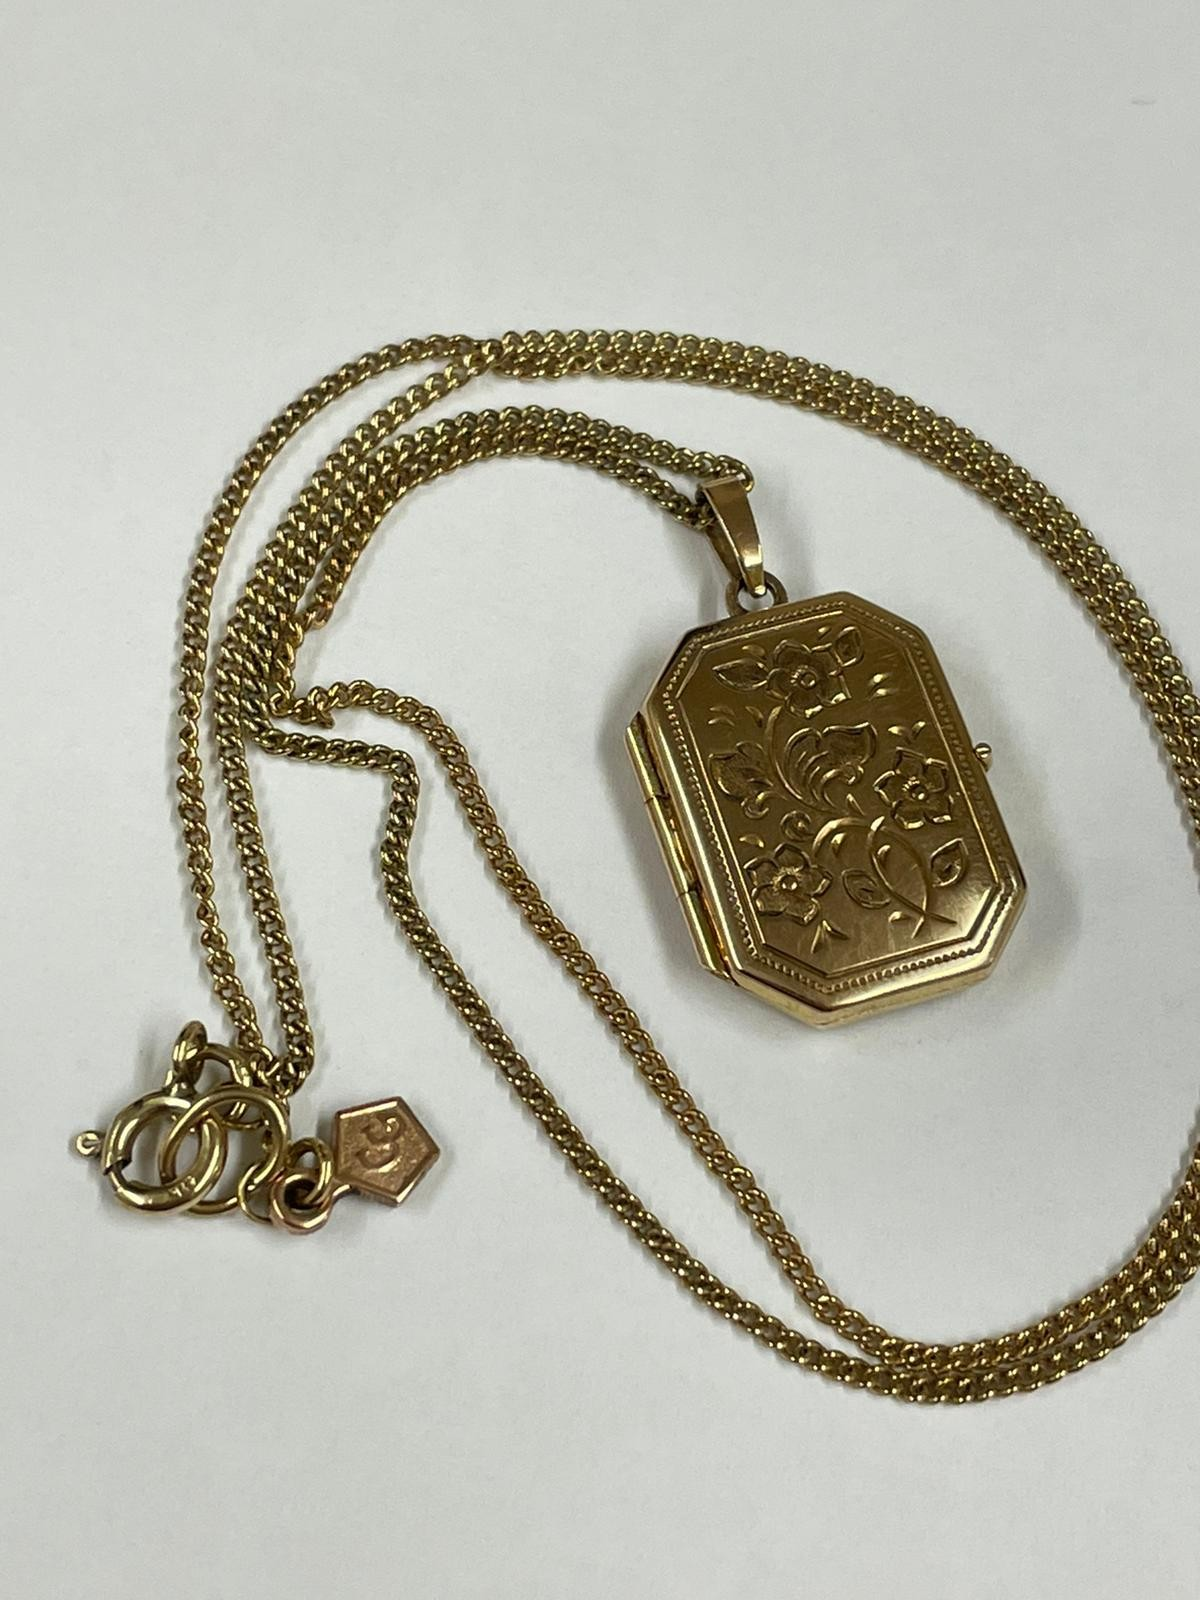 Vintage Clogau 9k yellow gold chain and locket , fully hallmarked. - Image 2 of 10